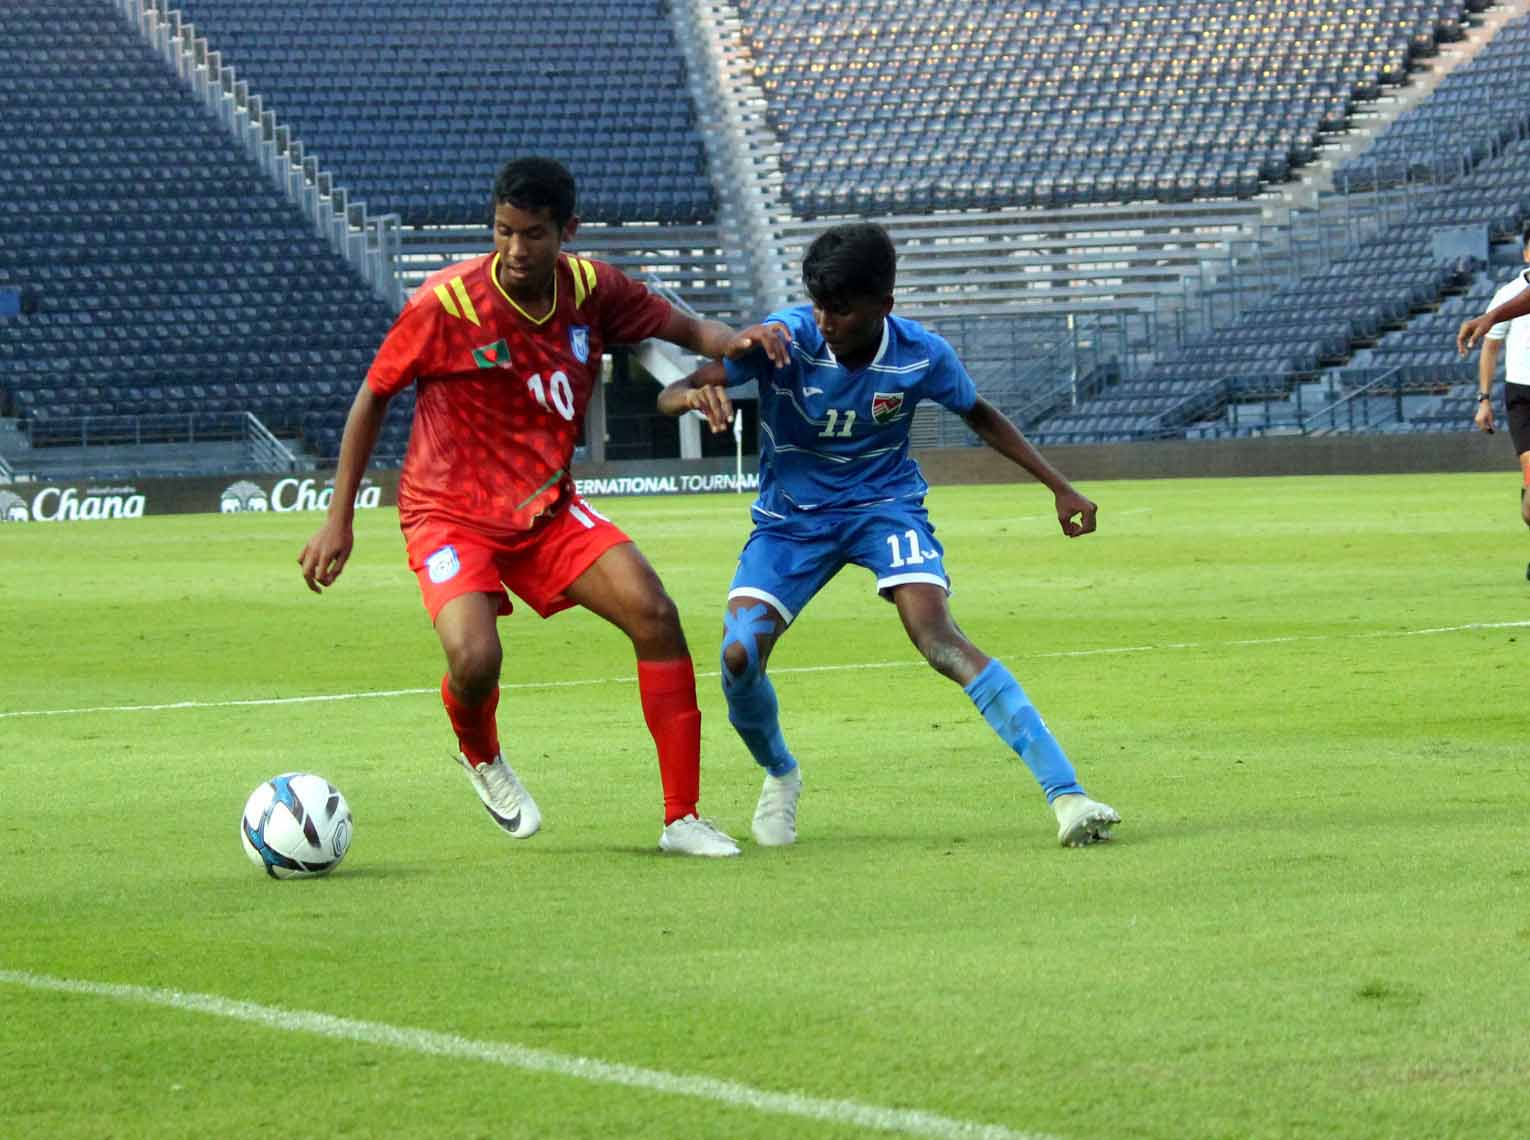 An action from the football match of the UEFA Under-15 Friendly Football Tournament between Bangladesh Under-15 Football team and Maldives Under-15 Football team at Buriram in Thailand on Friday. Bangladesh drubbed Maldives by ten goals to nil.